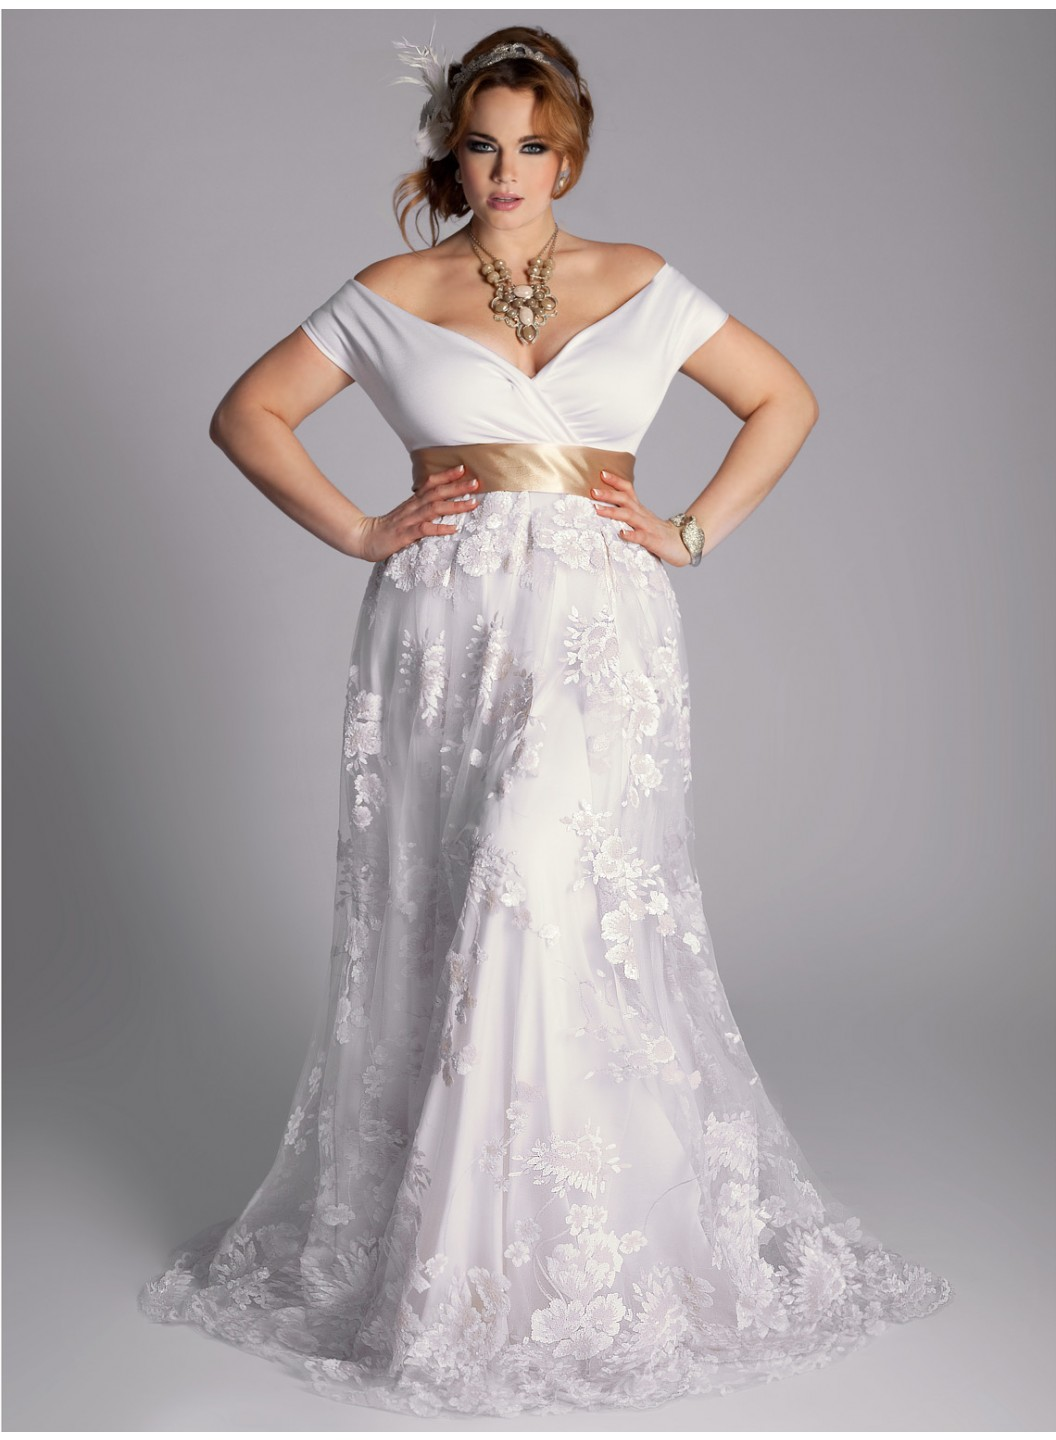 158d5b429add2 25 Stunning Plus-Size Wedding Dresses For Every Style Of Nuptial Affair